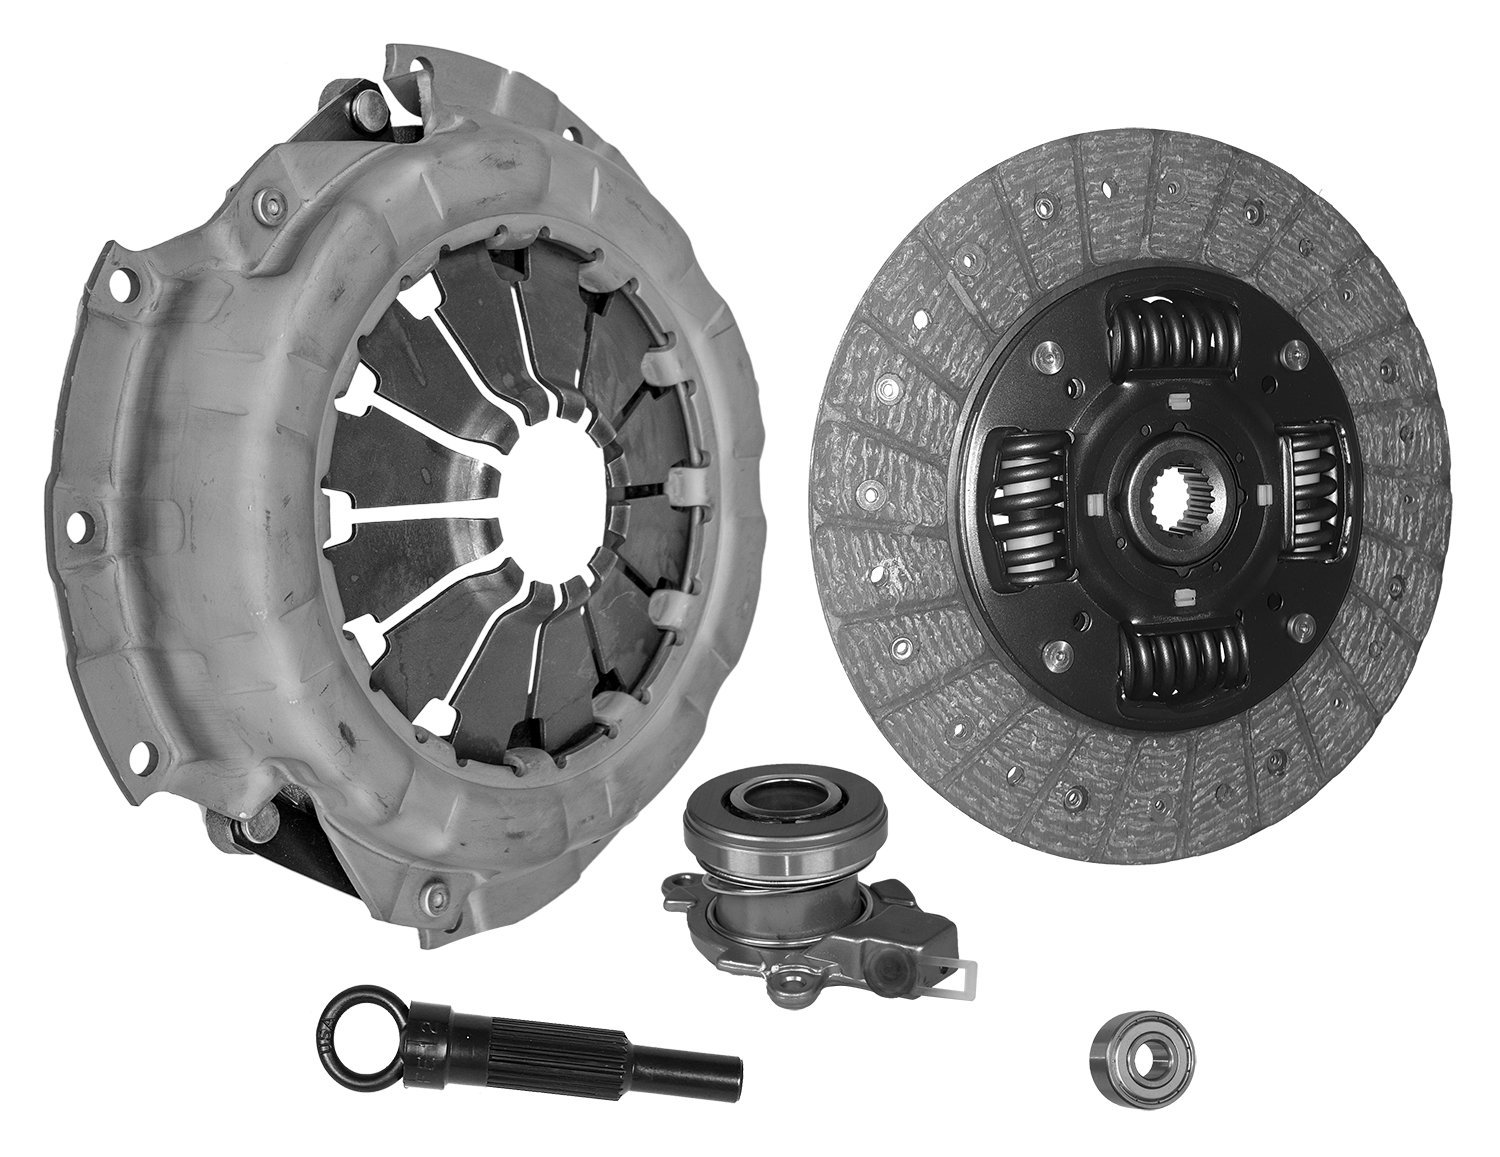 Clutch Kit Works With Mazda Rx-8 Grand Touring Gt R3 Sport 40th Anniversary Edition Base Shinka 2004-2011 1.3L R2 GAS Naturally Aspirated Rotary 13B-Msp 6 Speed; Stage 1